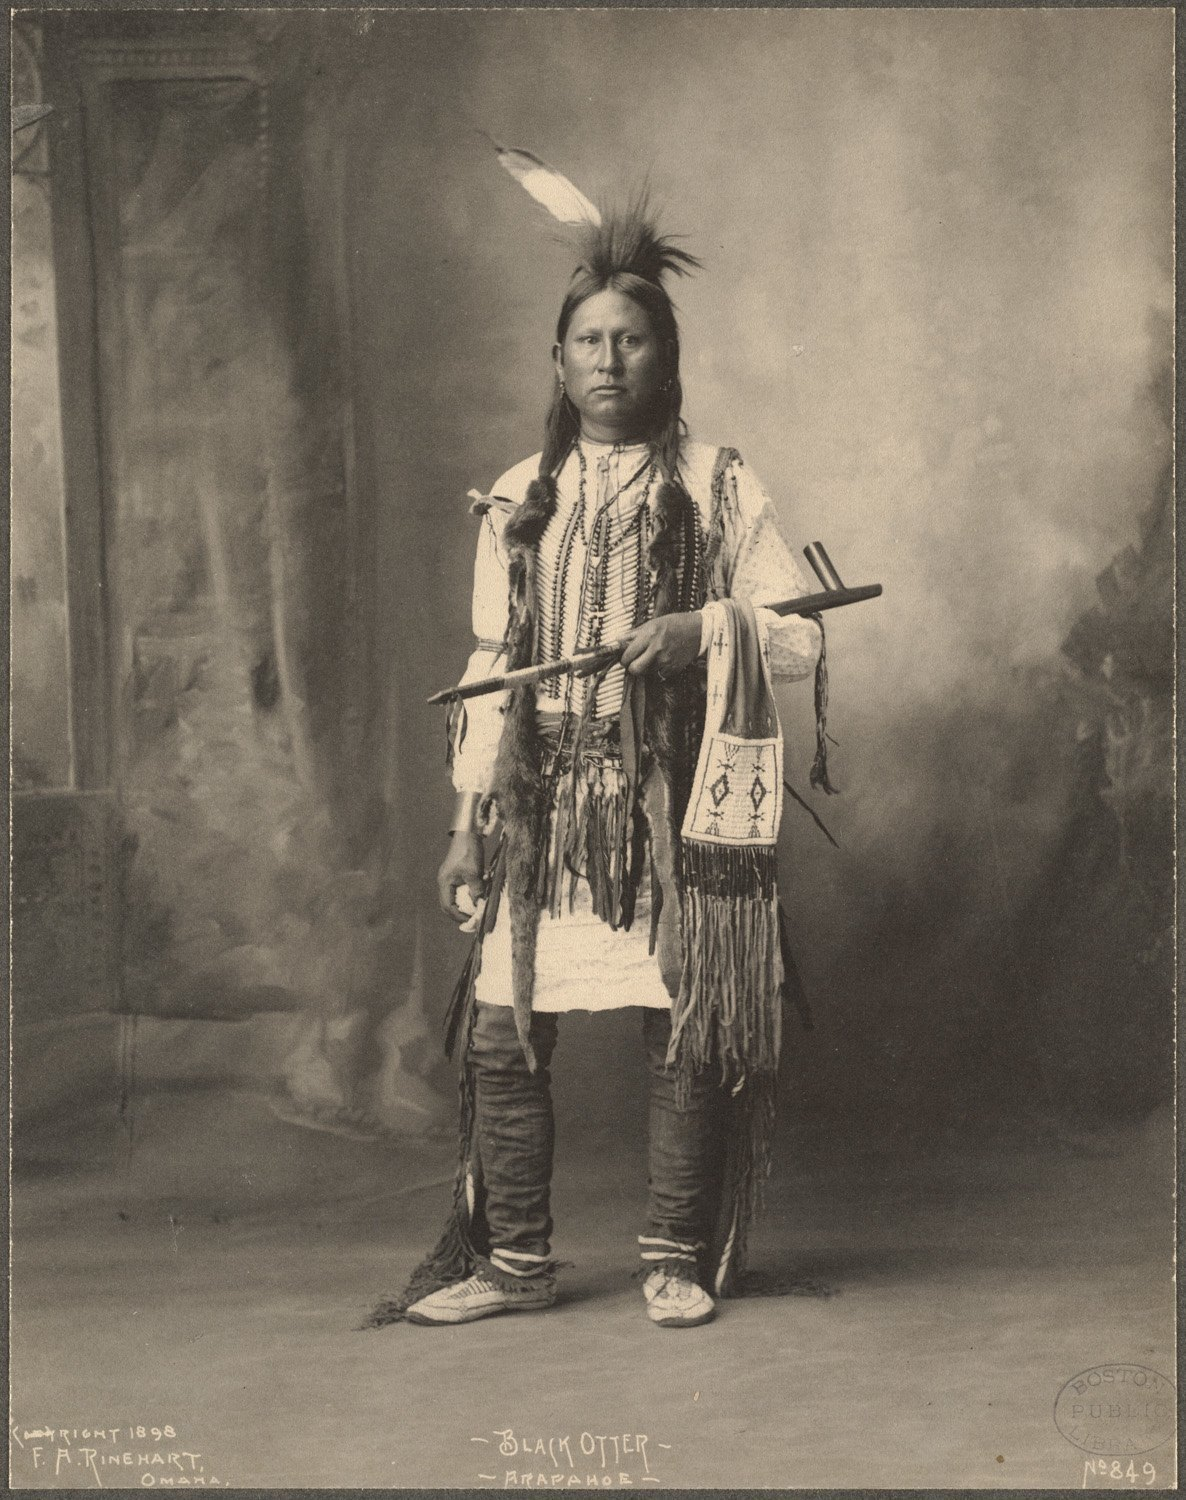 Black Otter, Arapahoe, 1899. (Photo by Frank A. Rinehart)